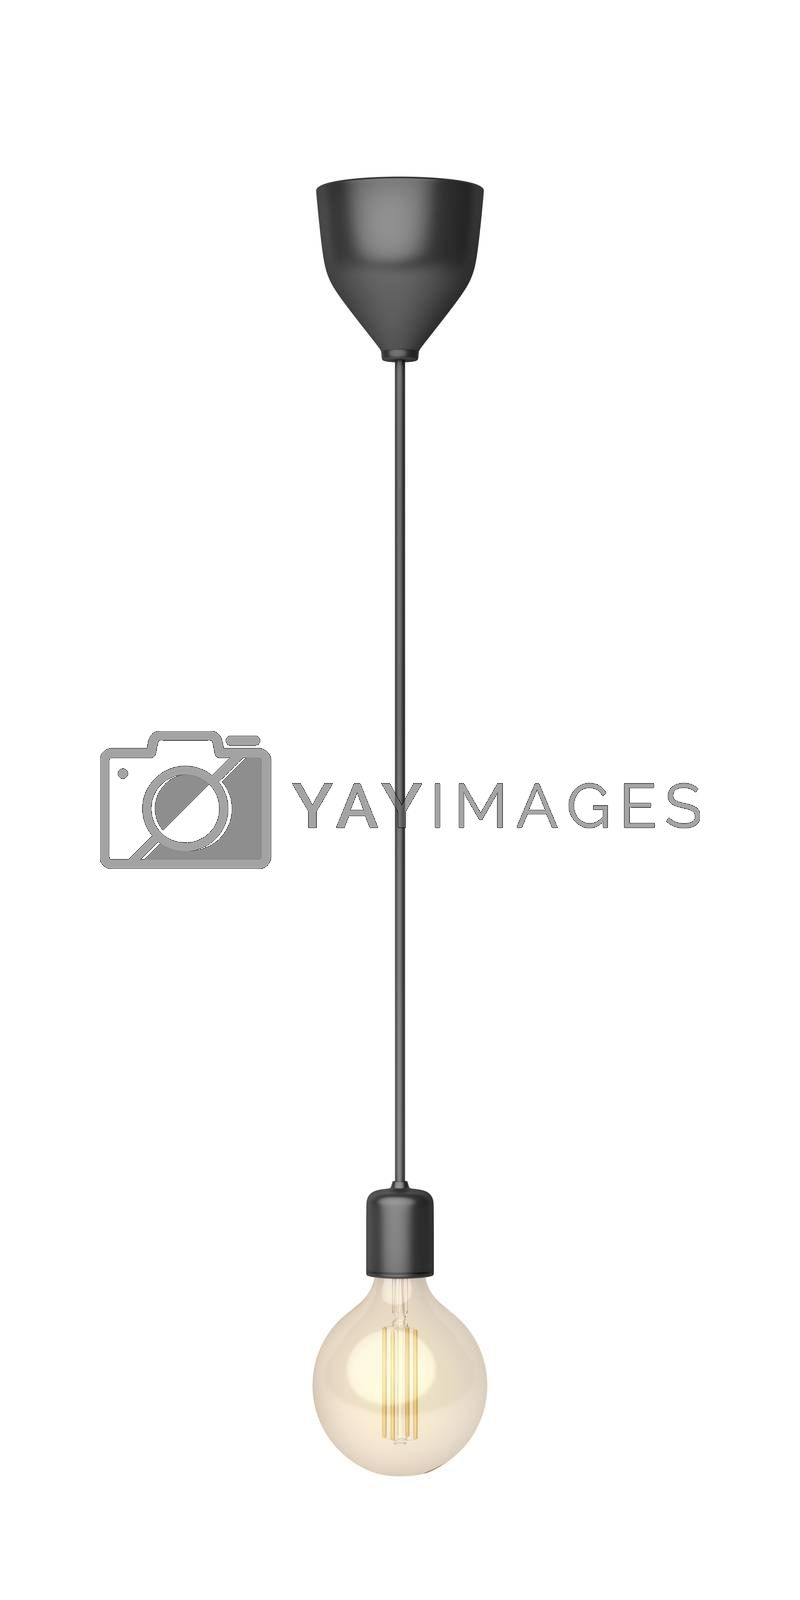 Pendant lamp with LED light bulb, isolated on white background